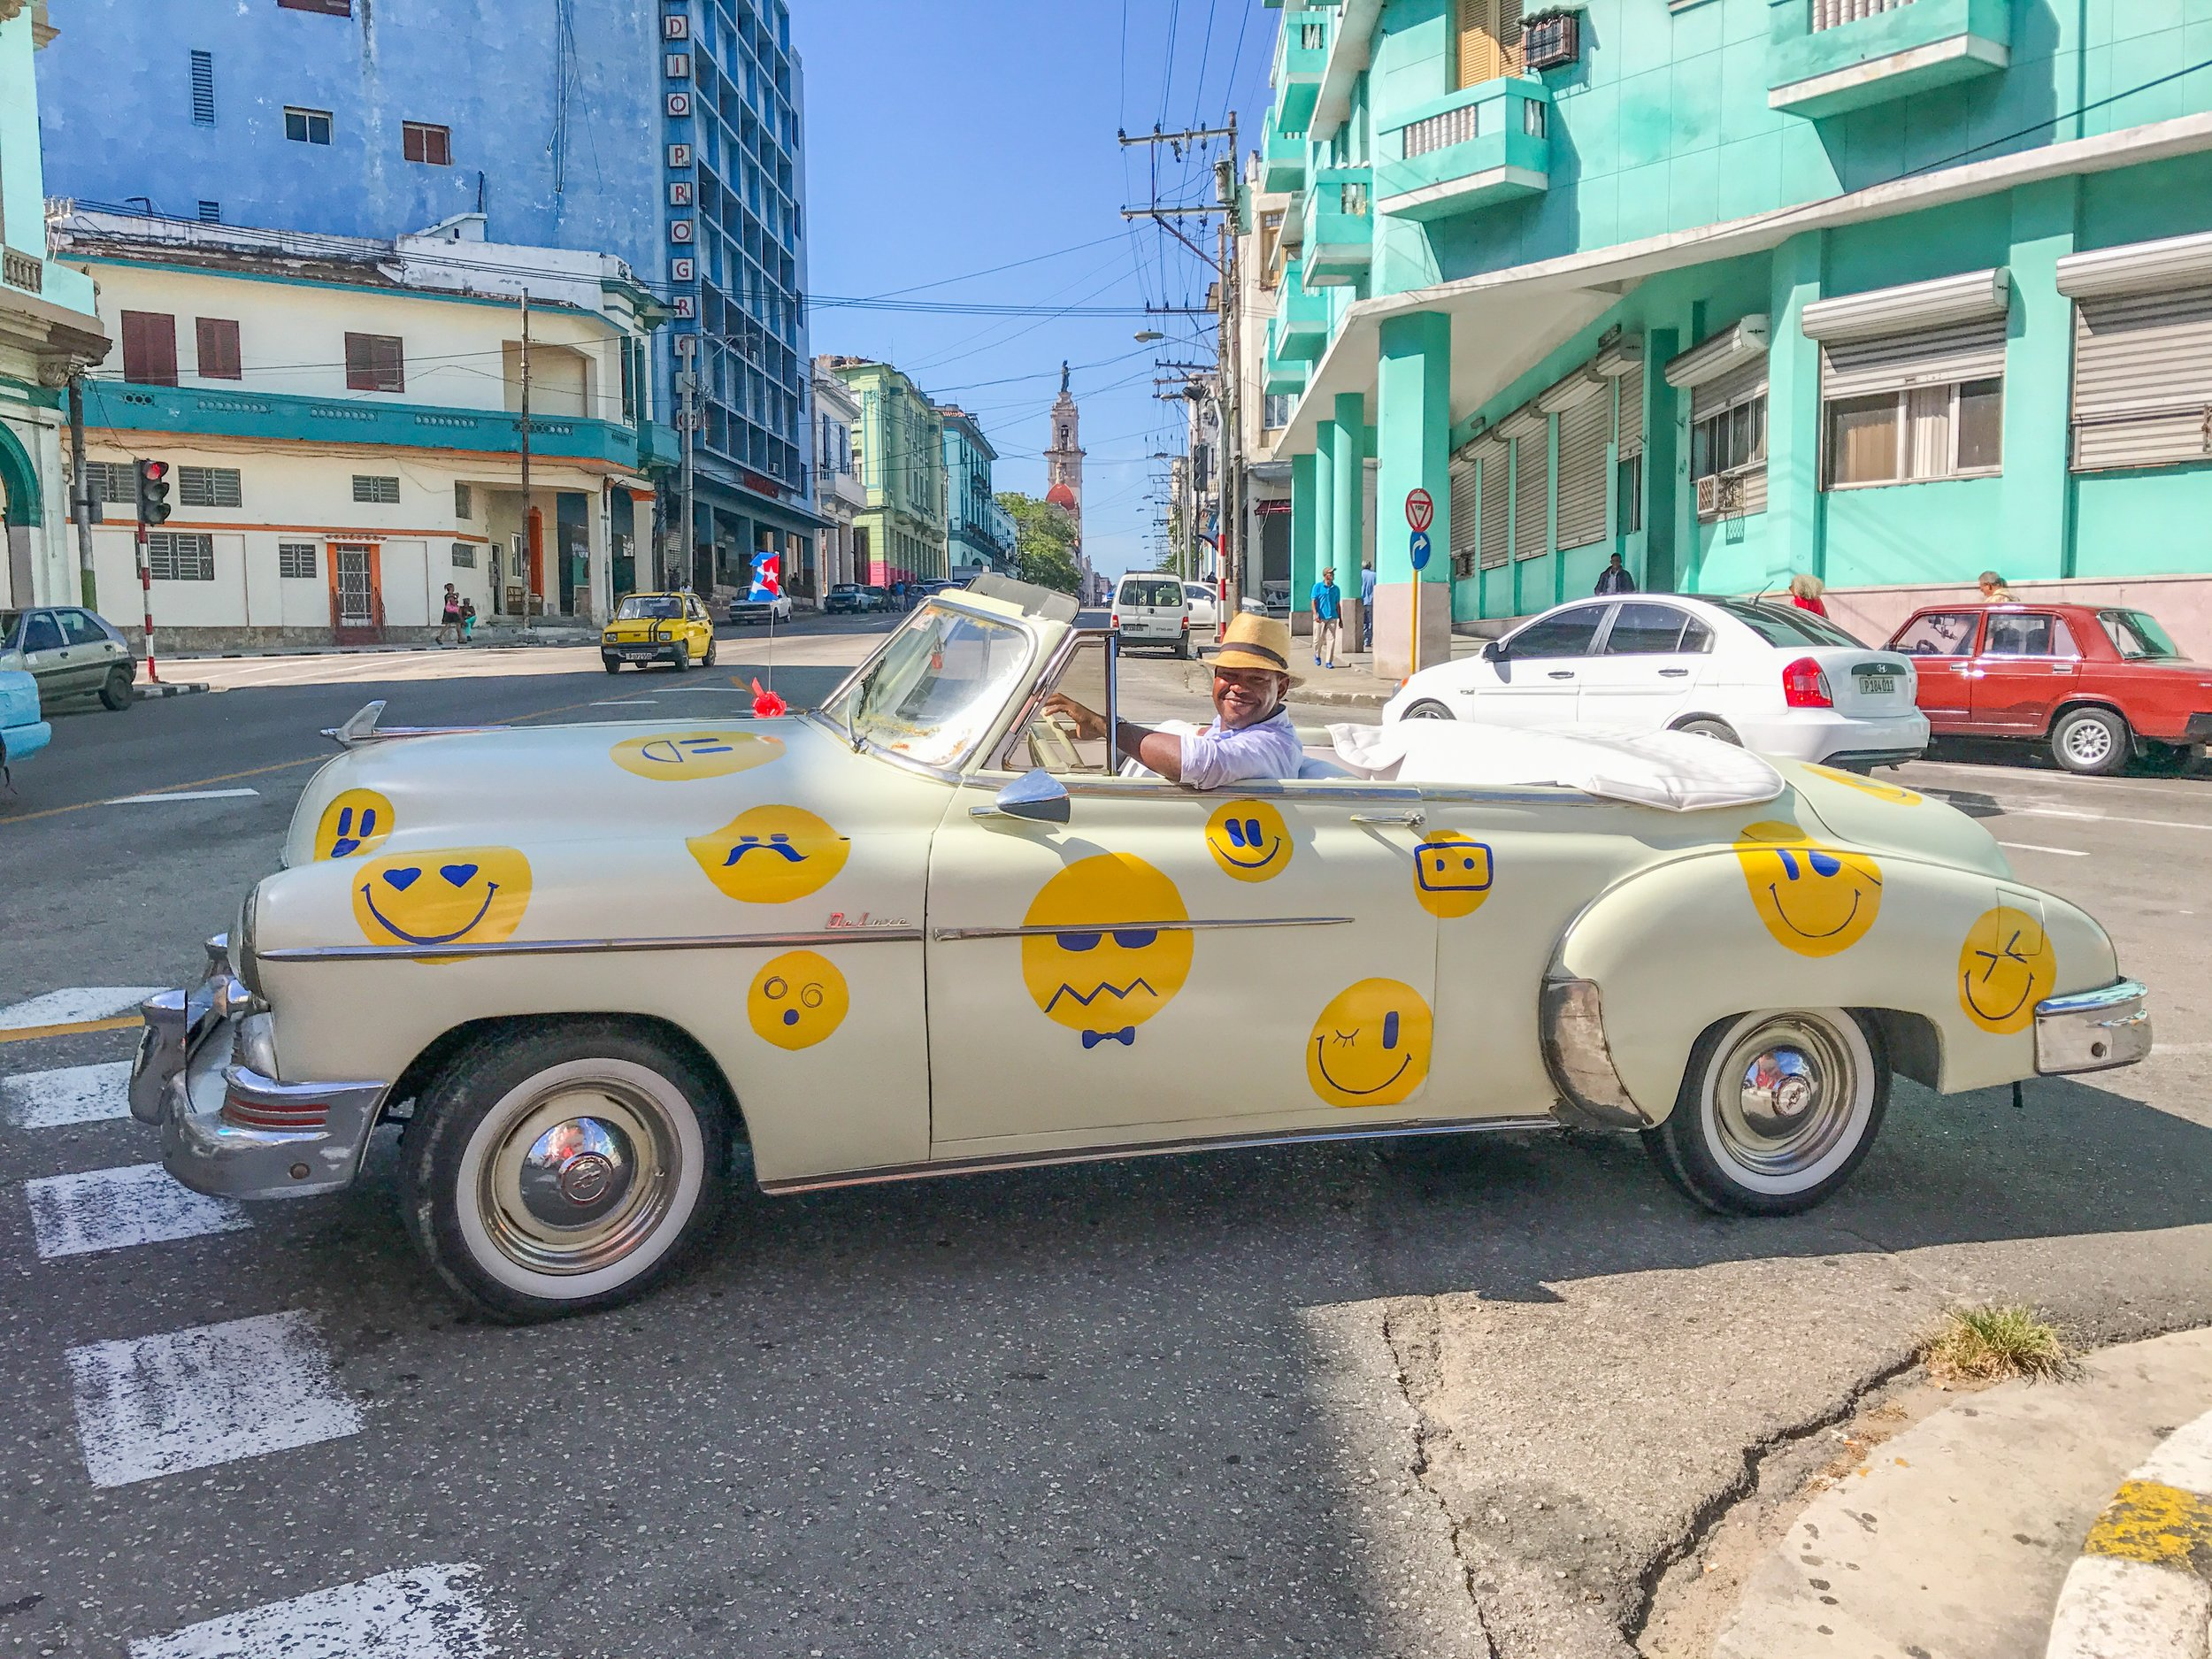 Possibly the happiest car in Cuba!